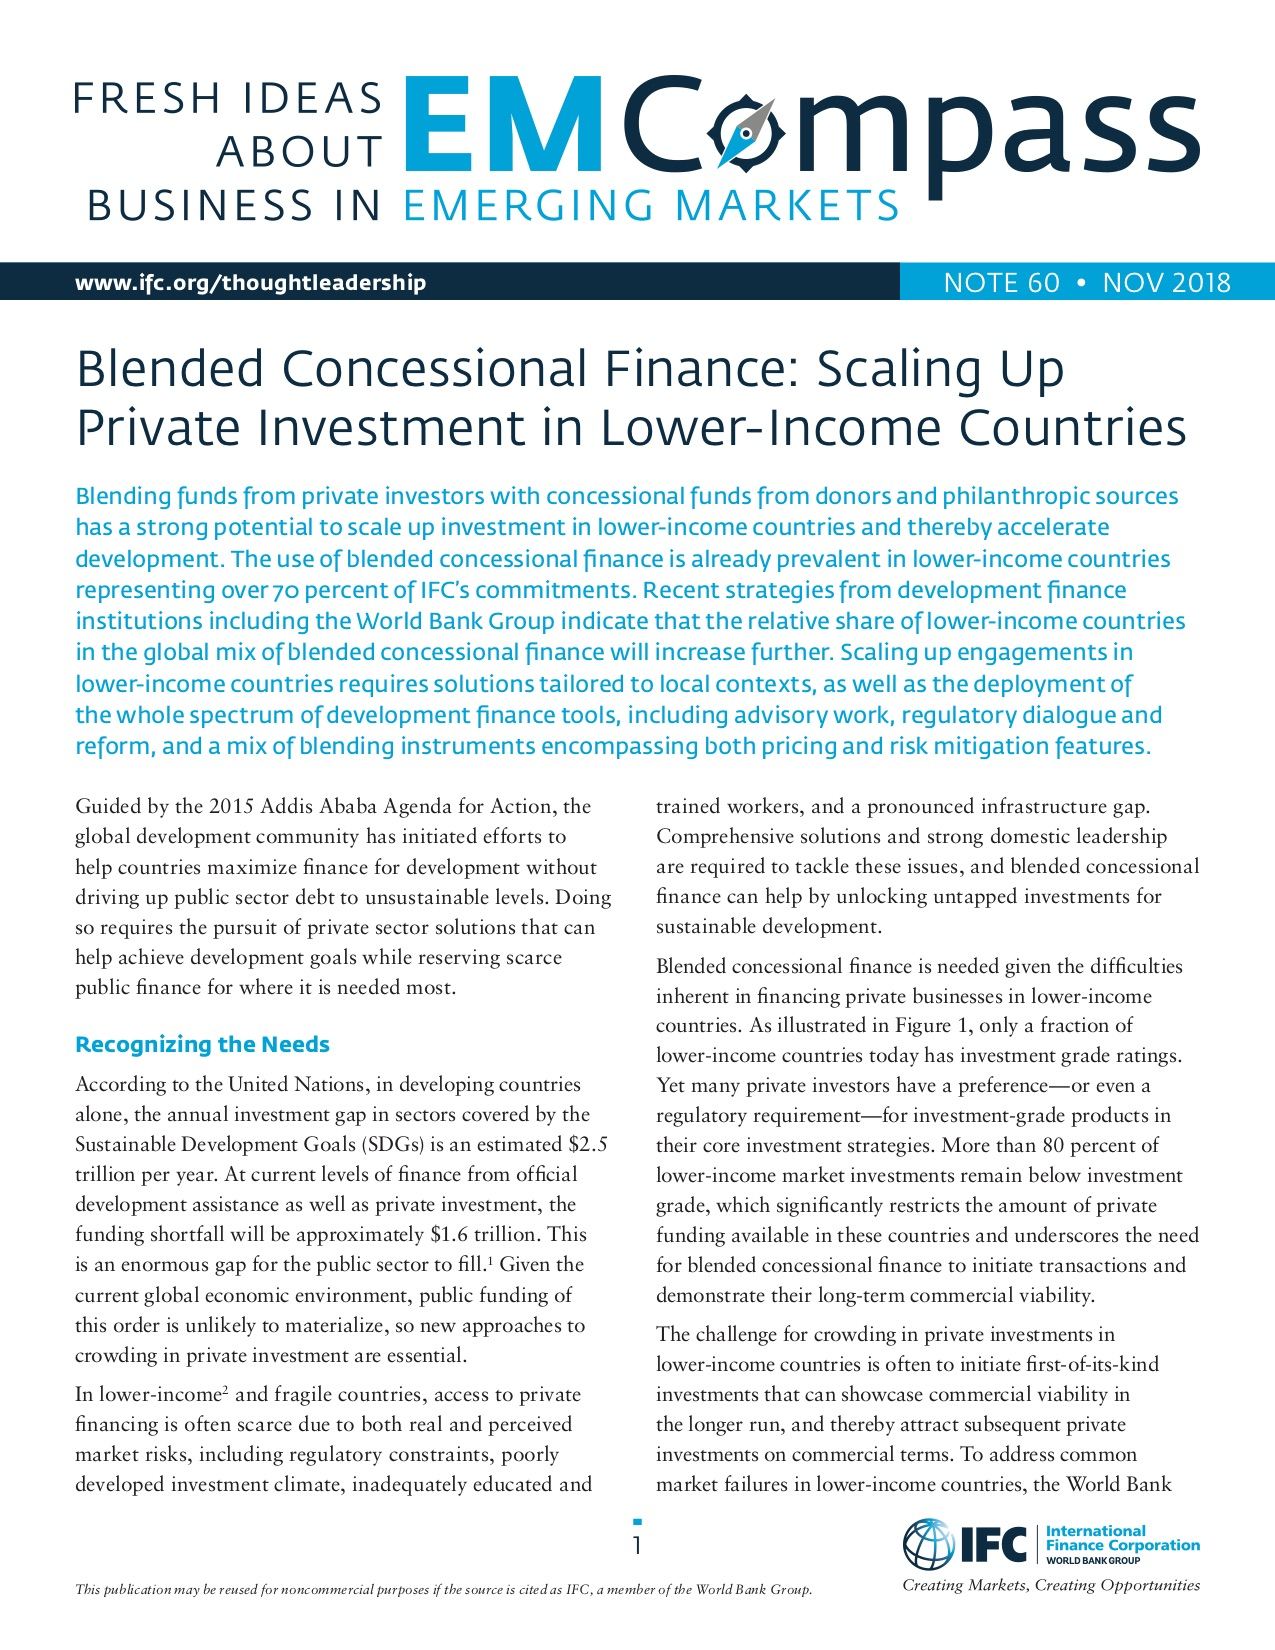 Blended Concessional Finance: Scaling Up Private Investment in Lower-Income Countries